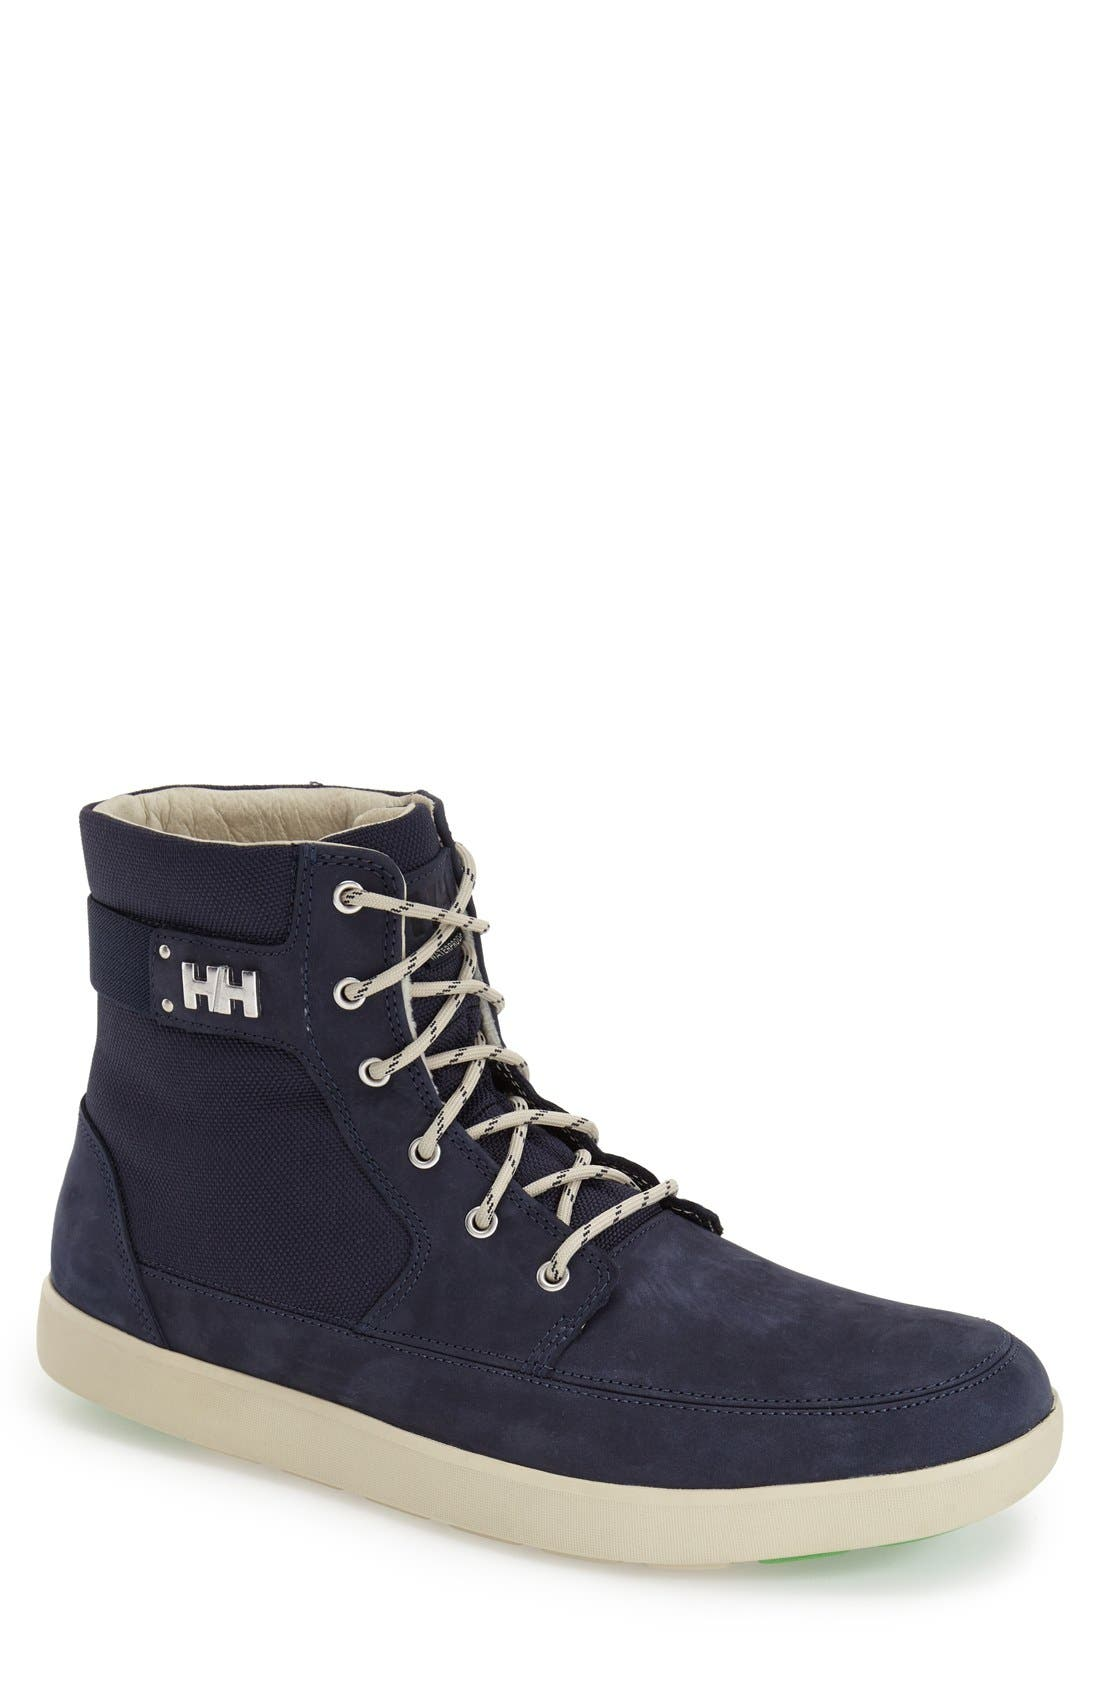 HELLY HANSEN 'Stockholm' Waterproof High Top Sneaker